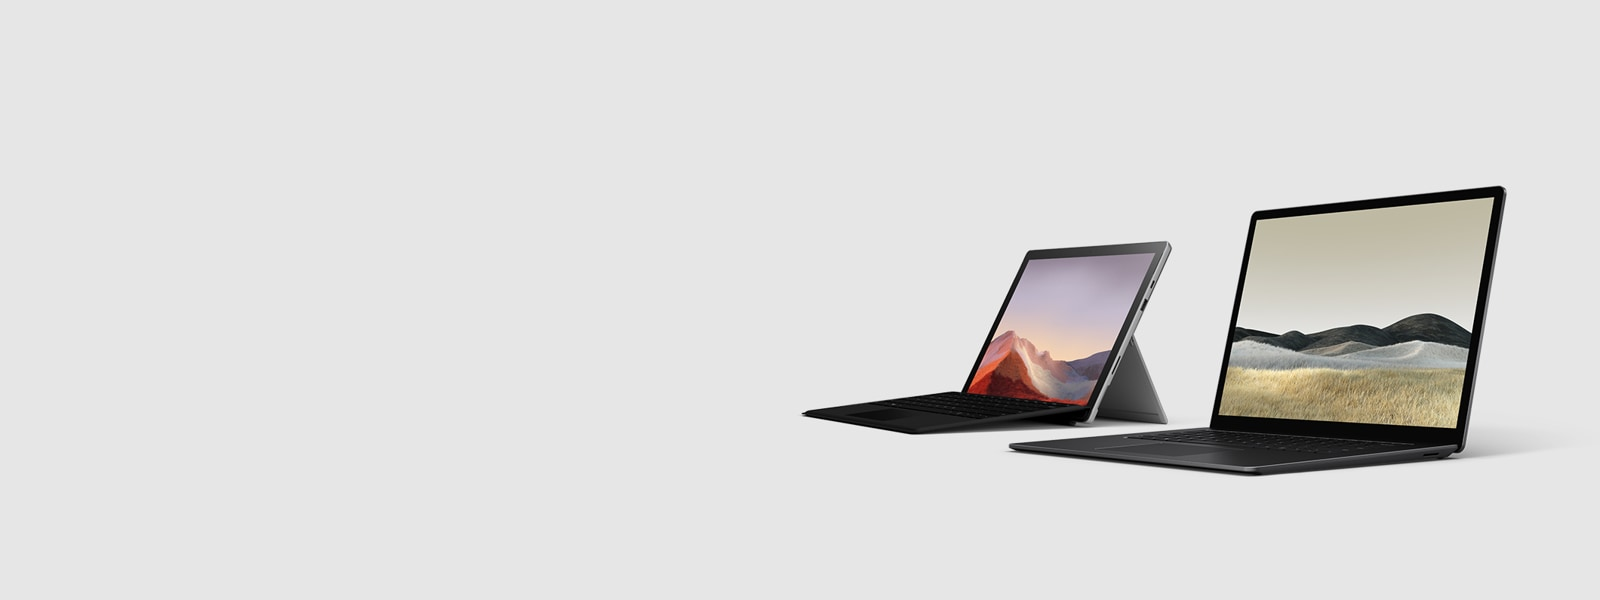 Surface Pro 7 and Surface Laptop 3